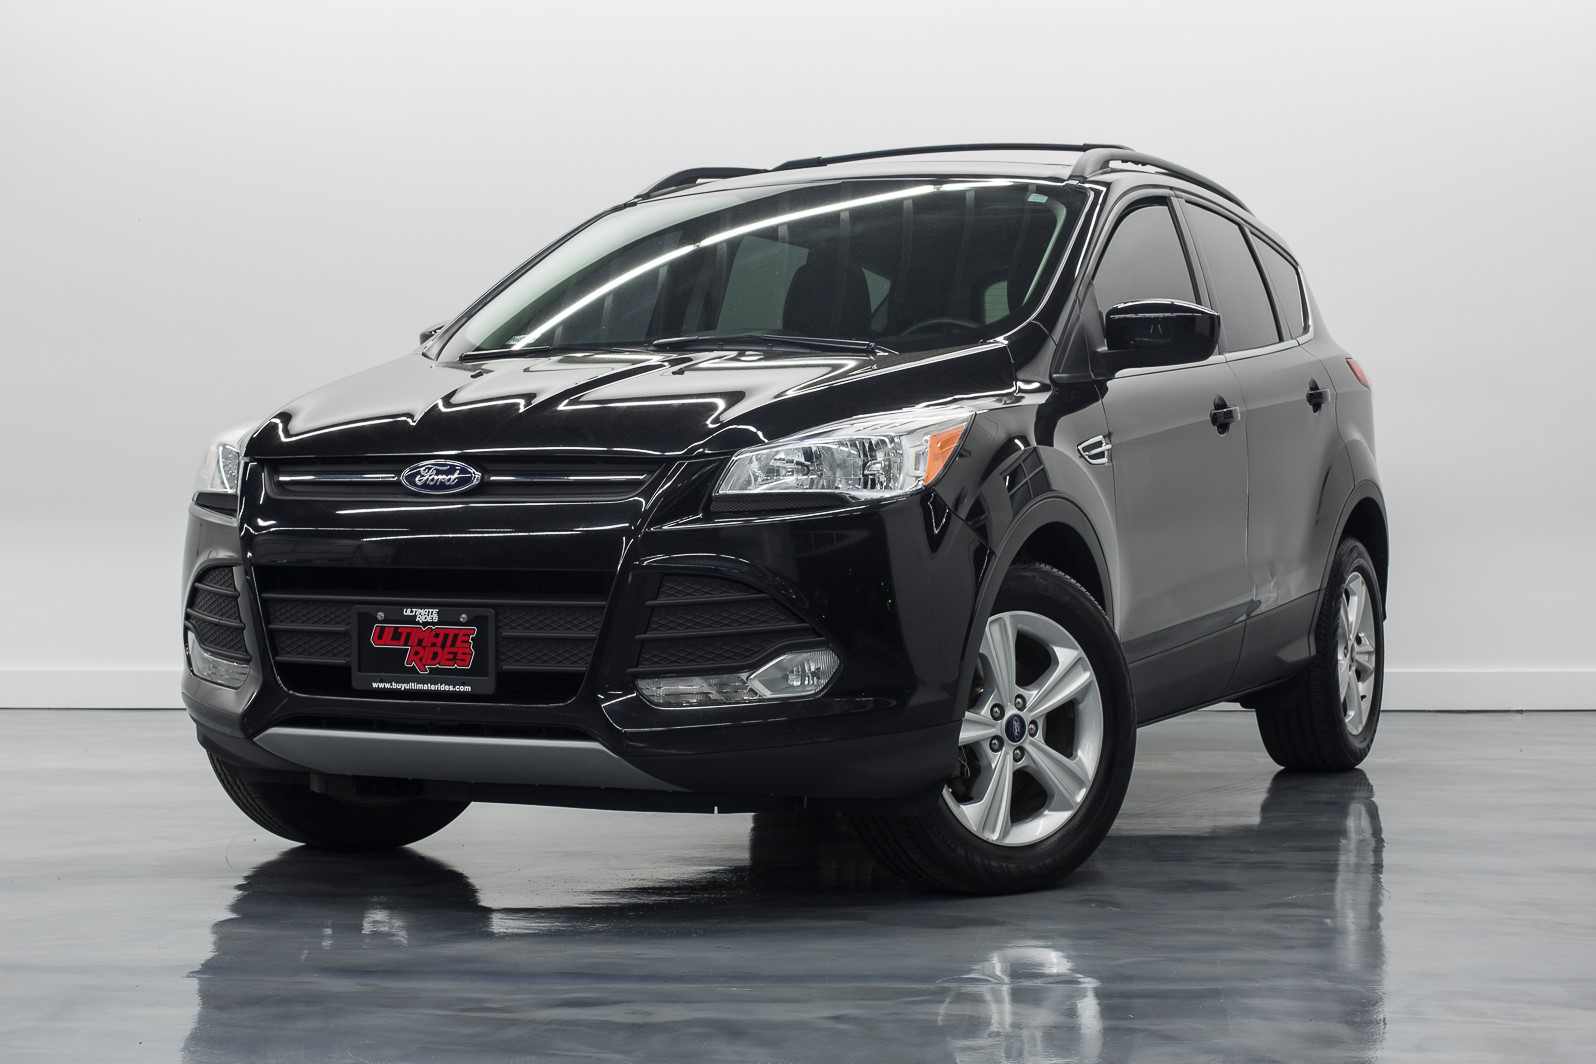 2013 Ford Escape SE full